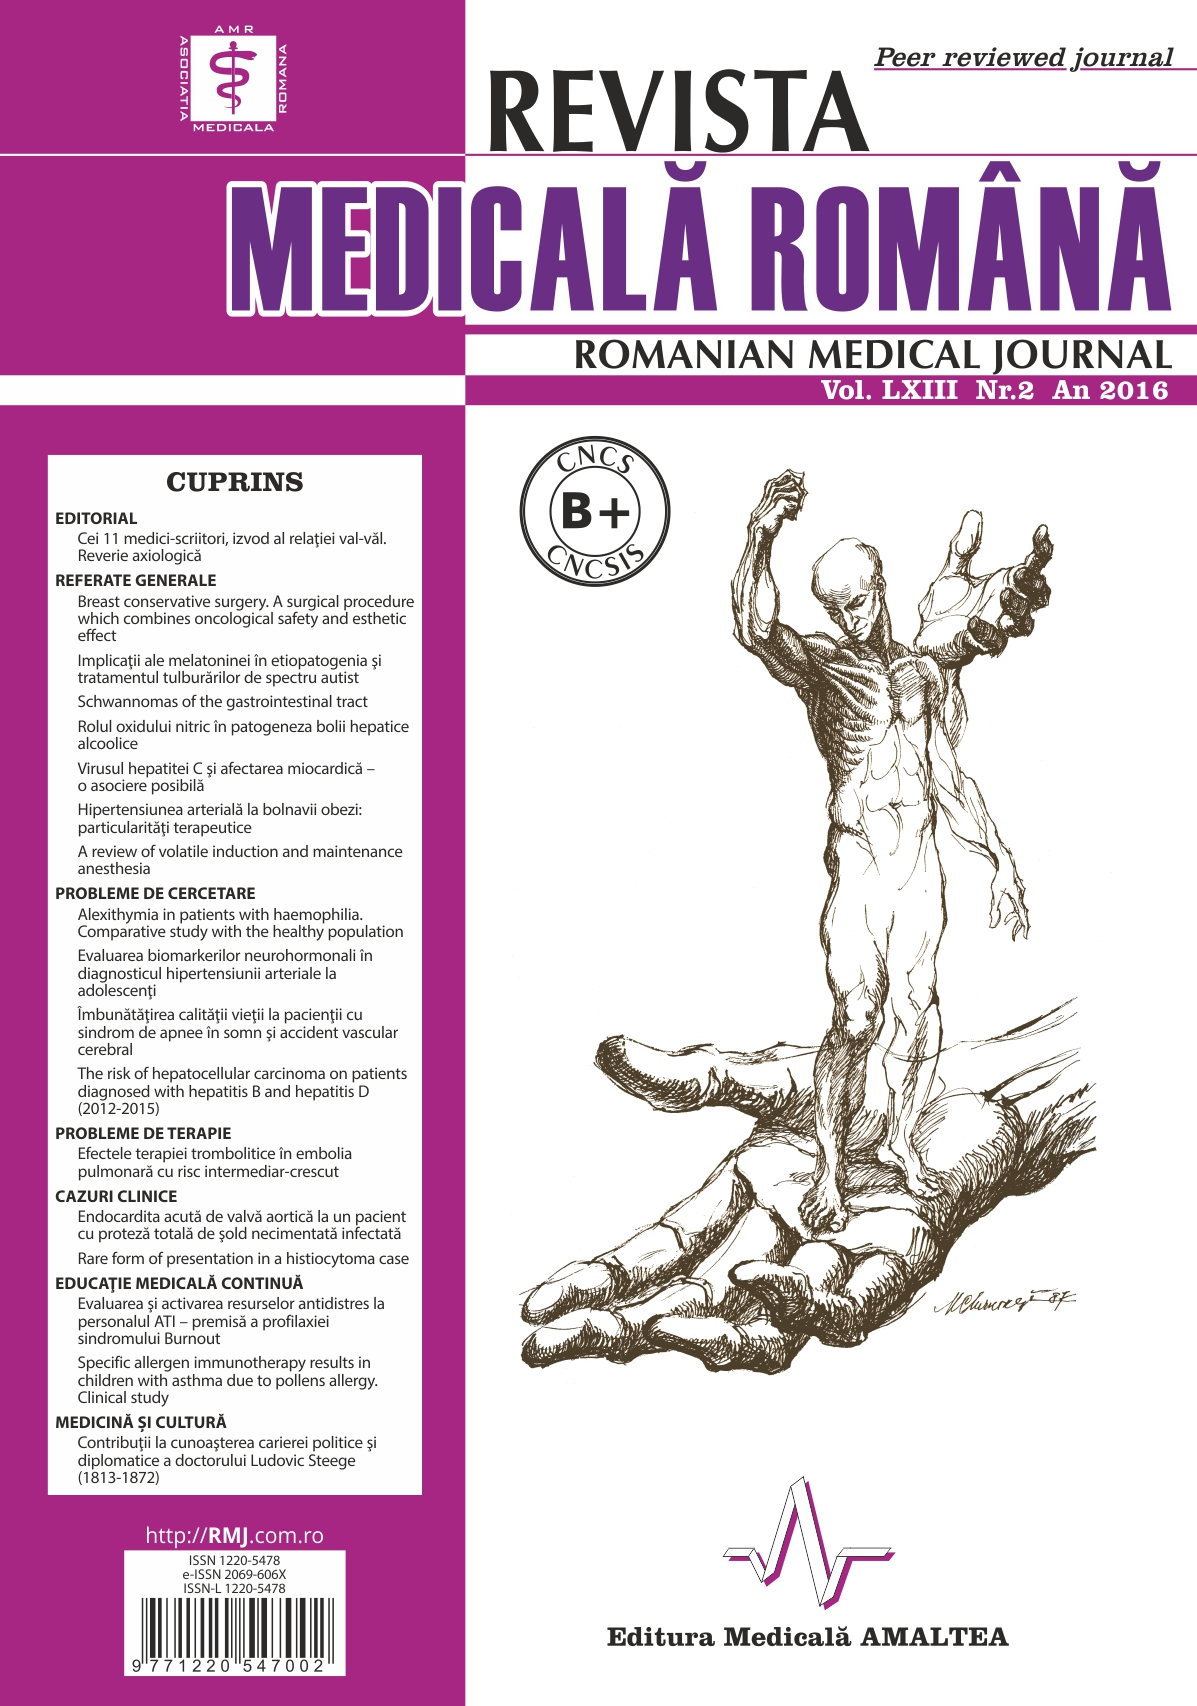 REVISTA MEDICALA ROMANA - Romanian Medical Journal, Vol. LXIII, Nr. 2, An 2016